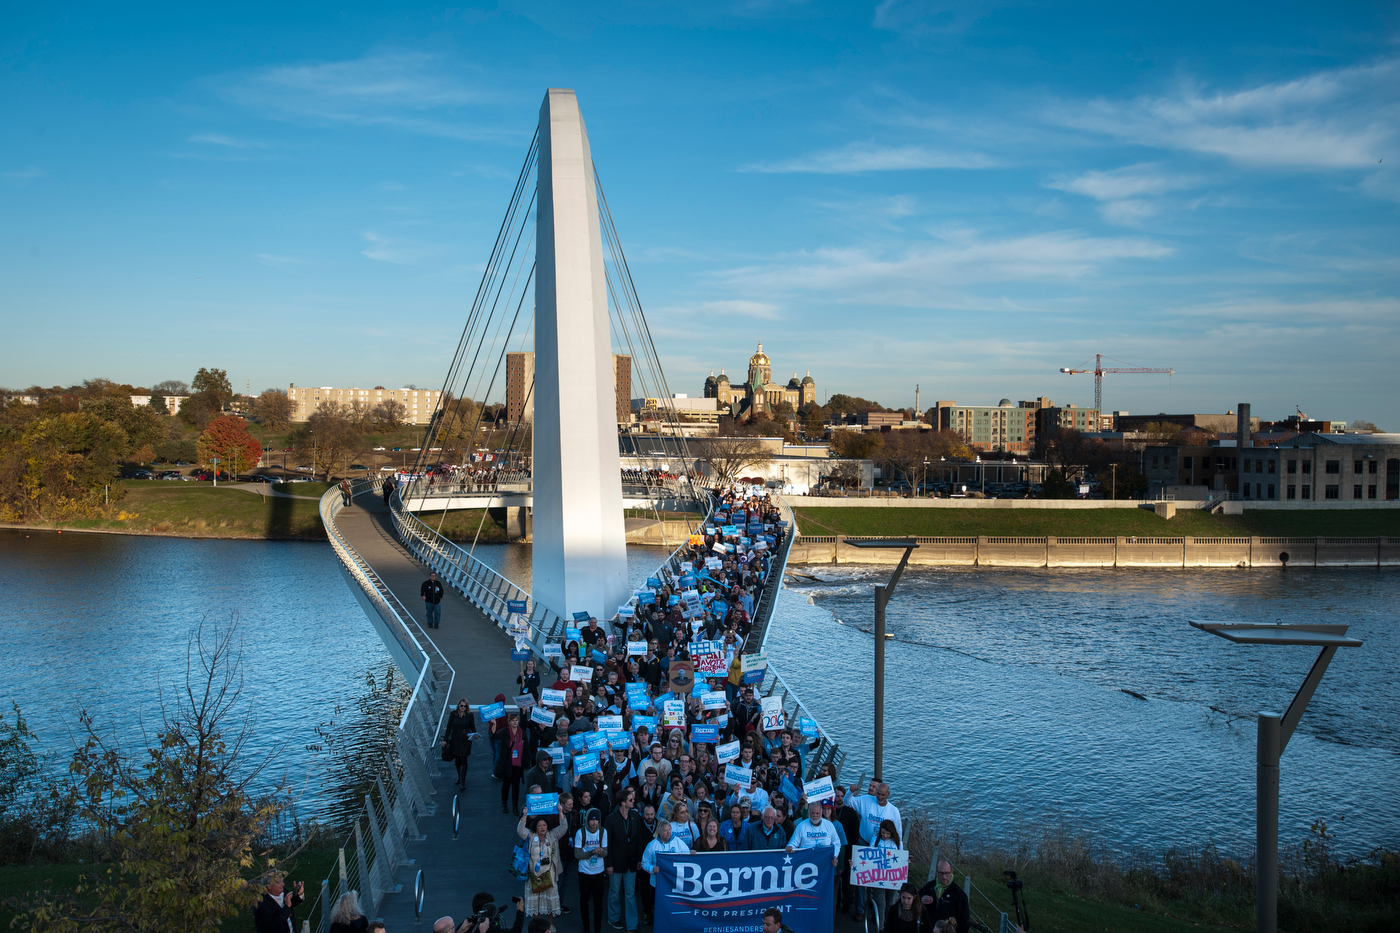 Democratic presidential candidate Sen. Bernie Sanders participates marches with supporters across the Iowa Women of Achievement Bridge in downtown Des Moines.